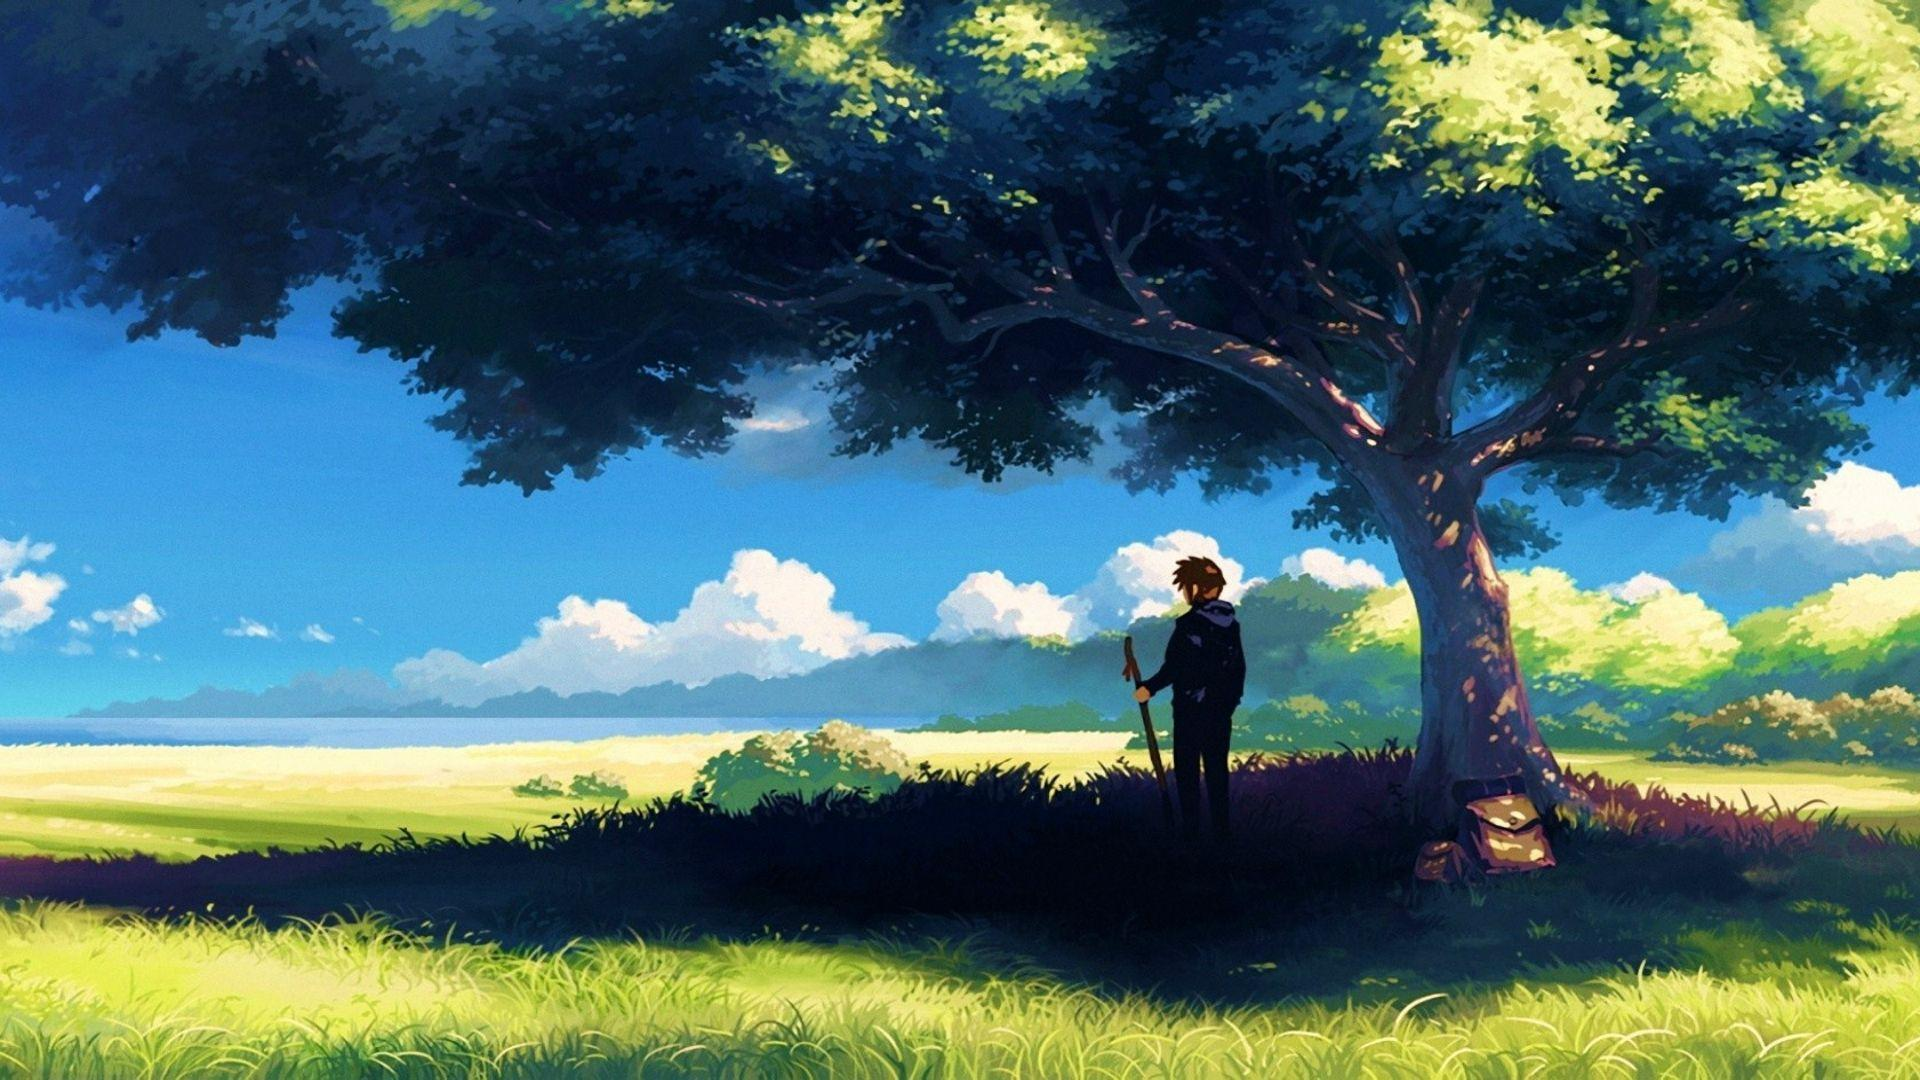 Anime Landscape Wallpapers - Wallpaper Cave